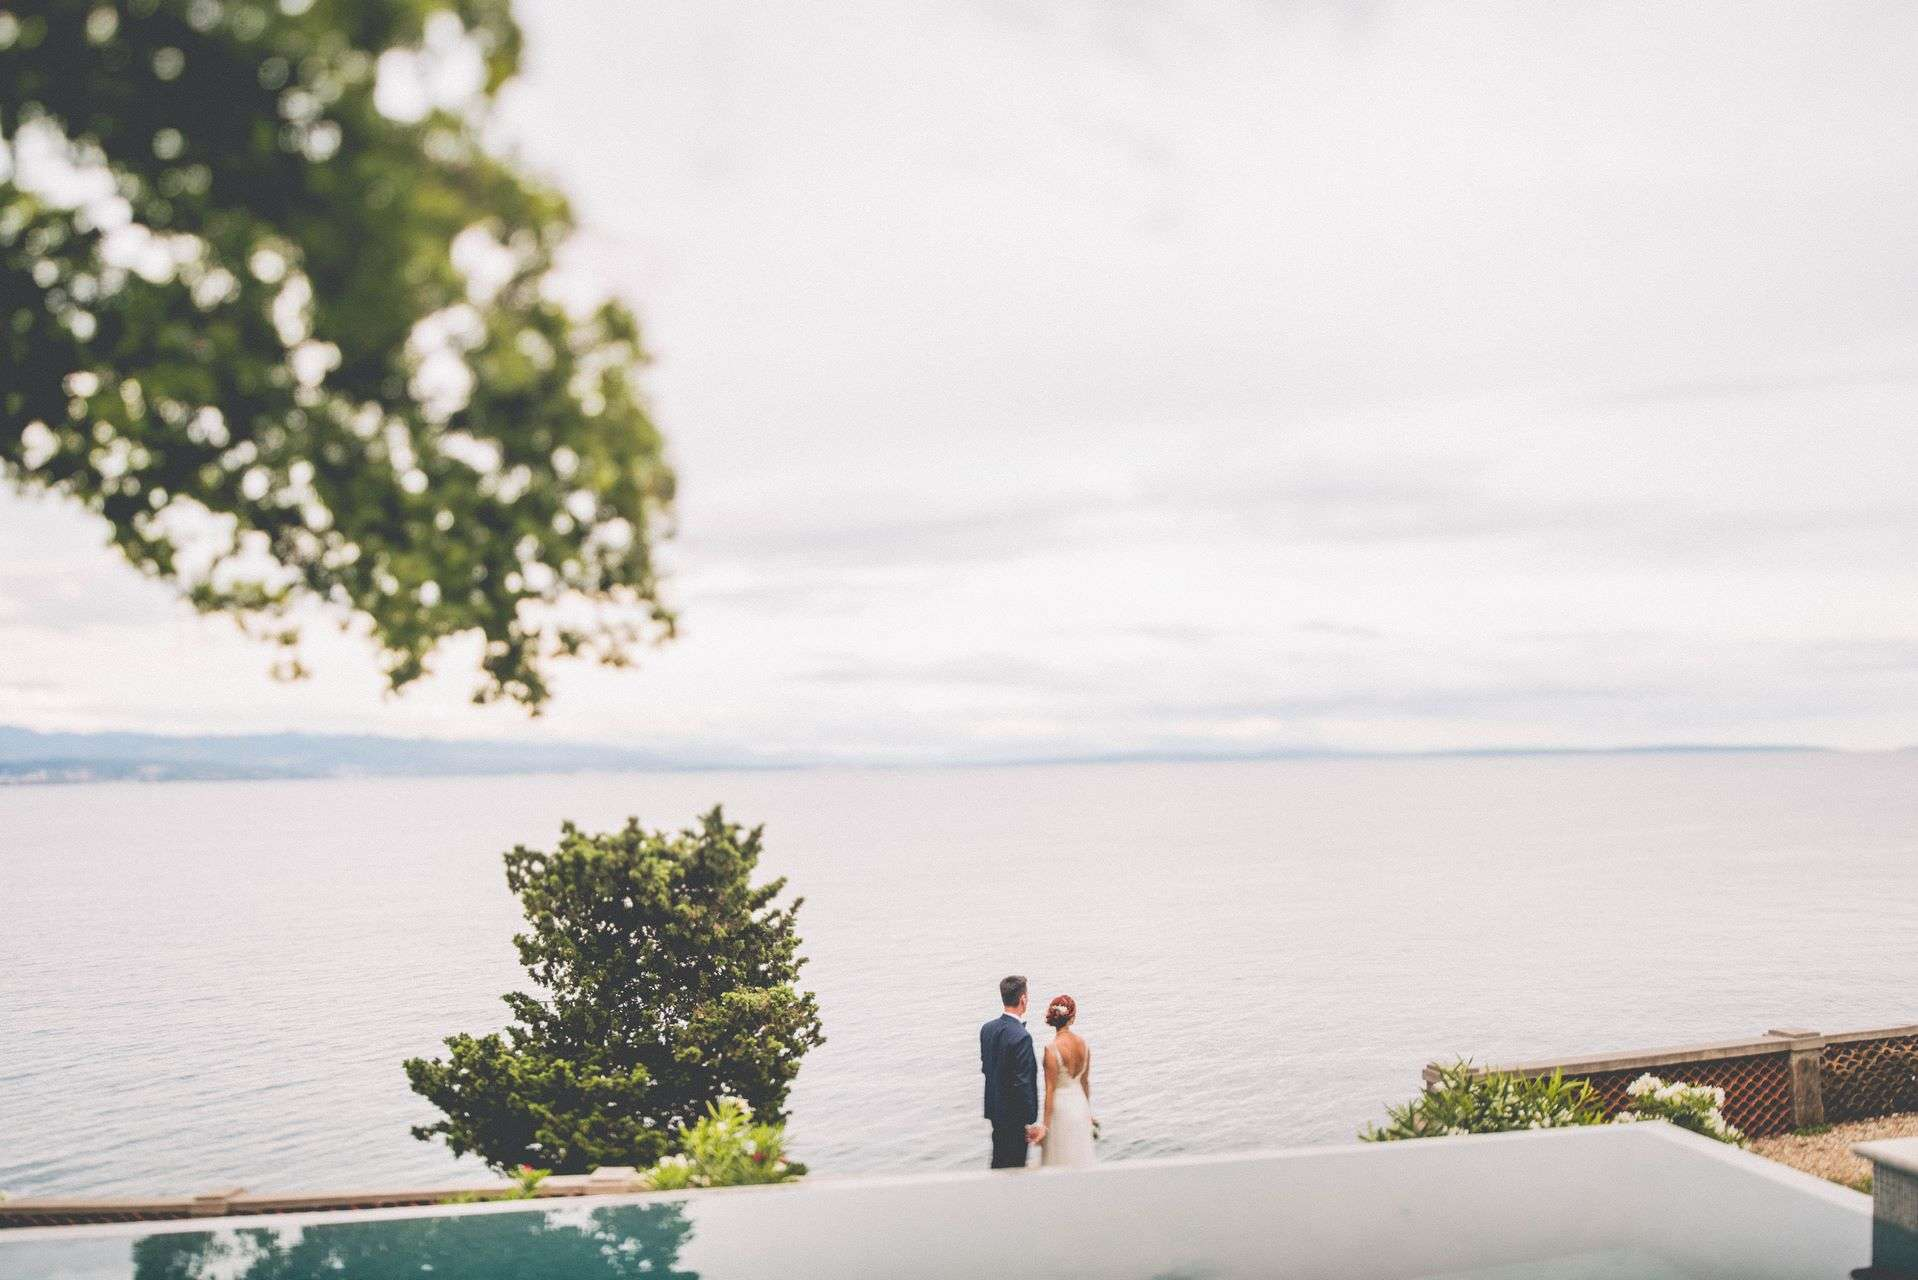 wedding-photographer-opatija-063